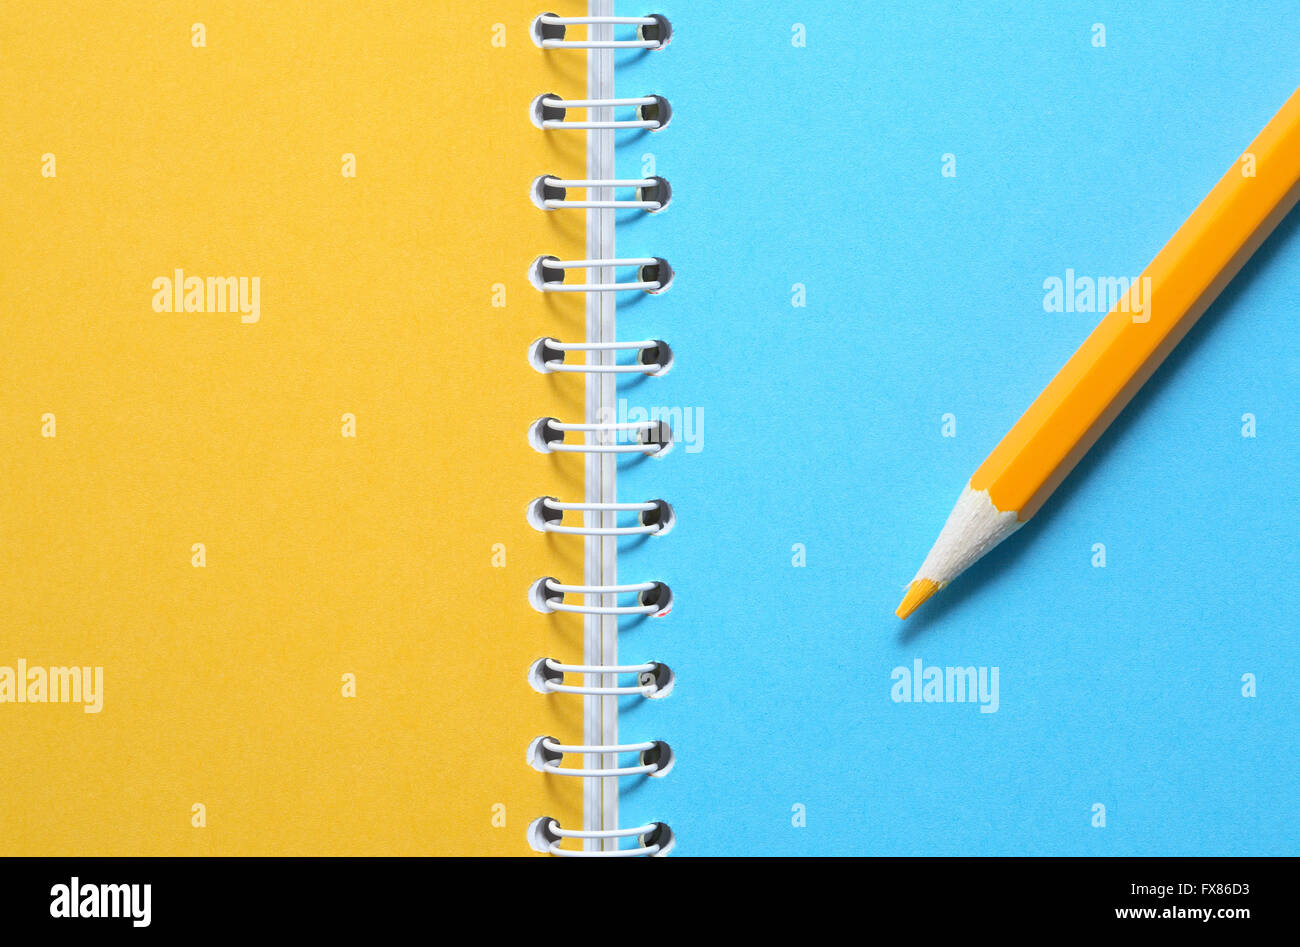 Yellow pencil on notebook with colored blank pages Stock Photo ...